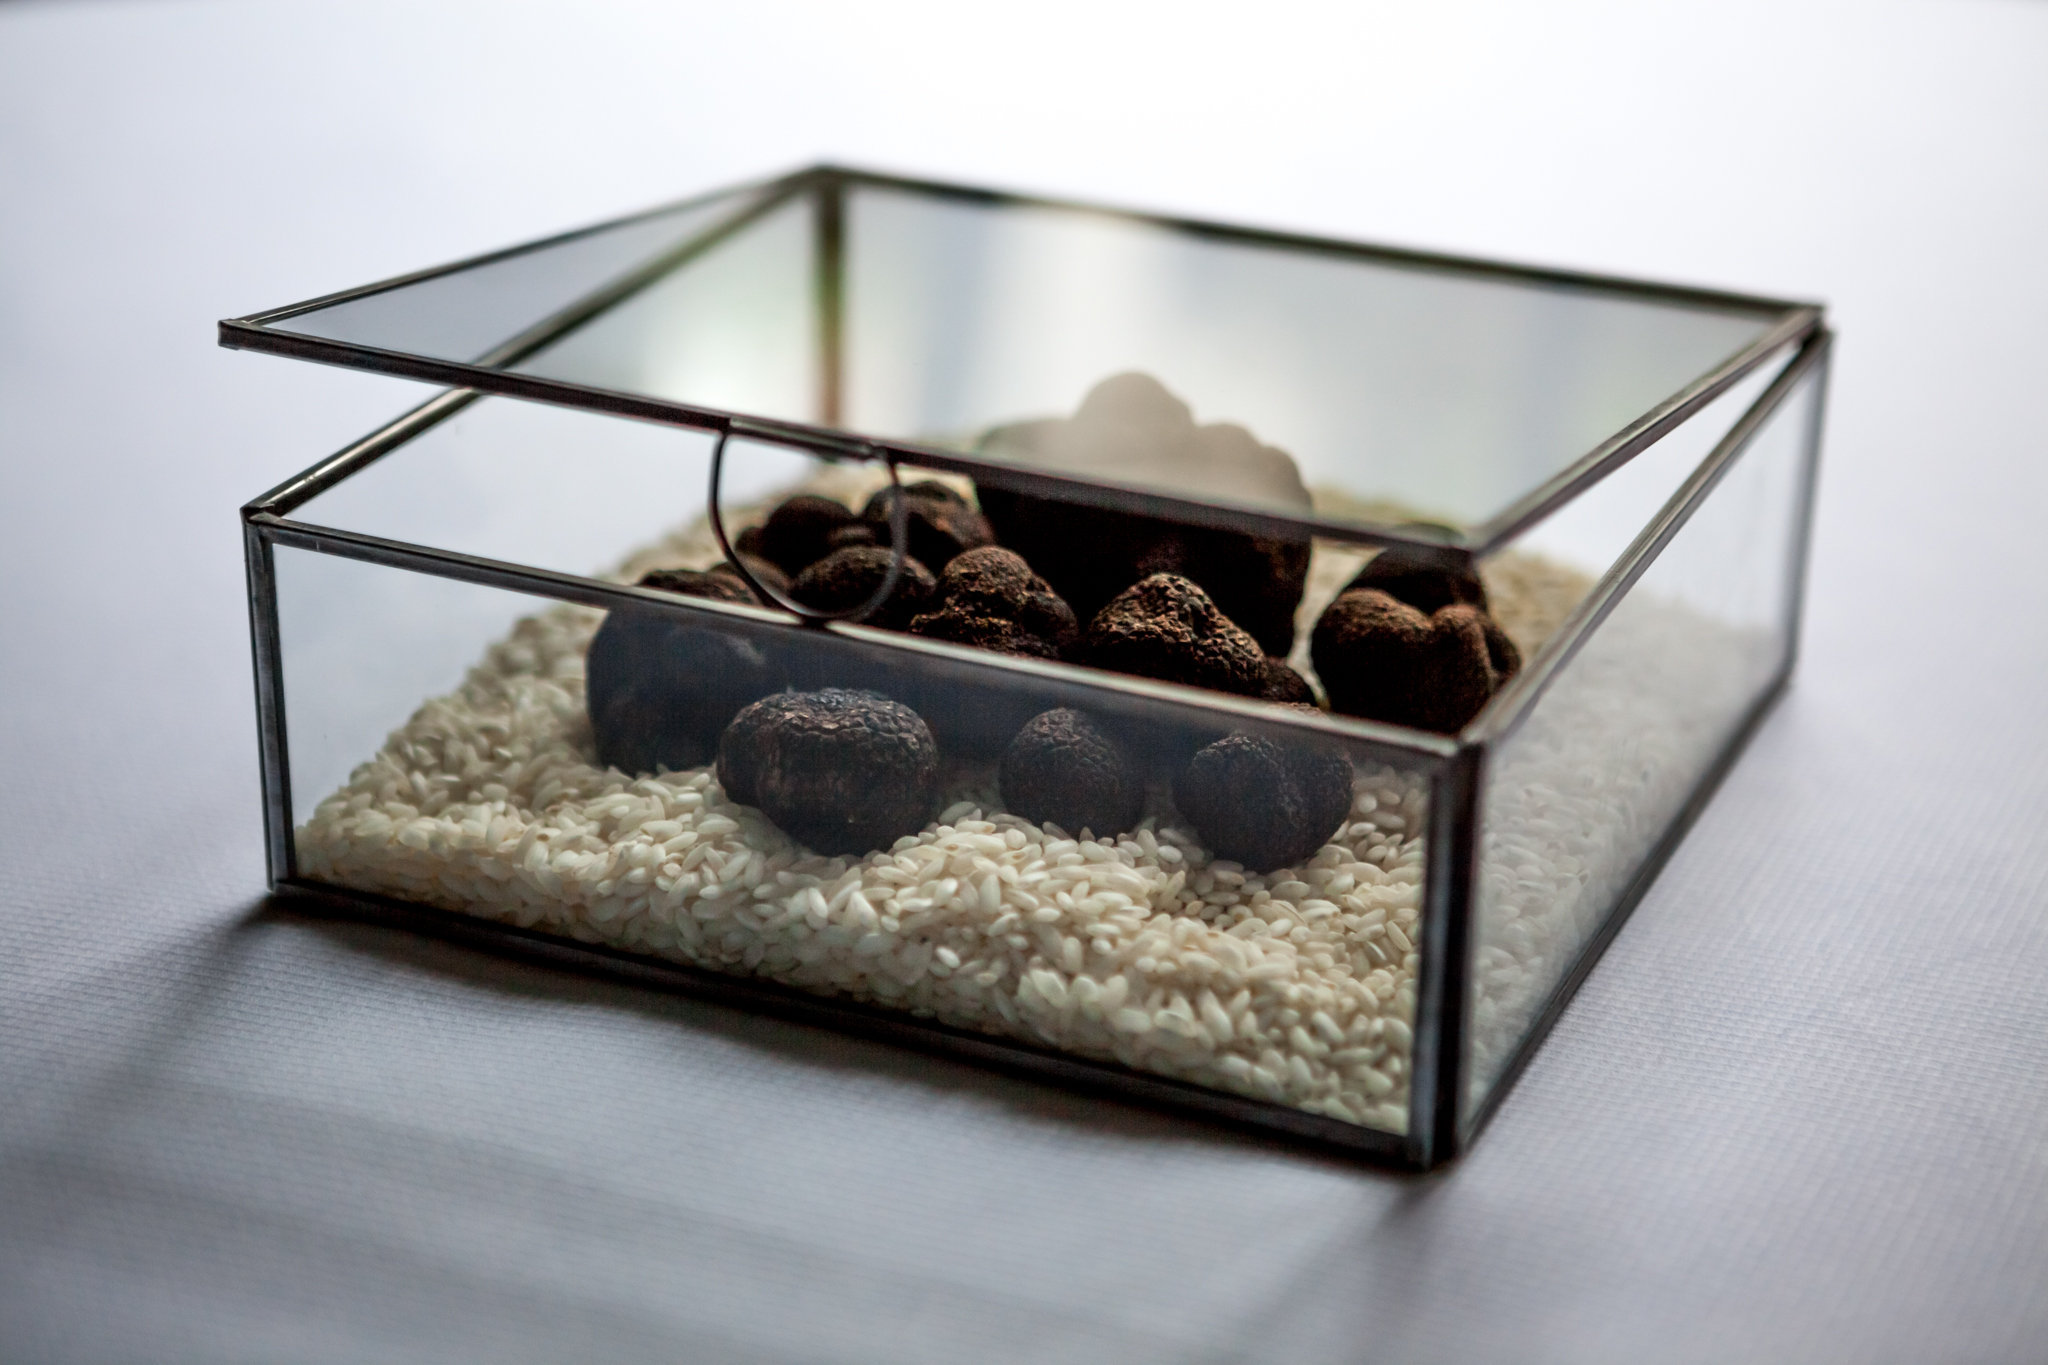 proefkoken_part_II_03.jpg